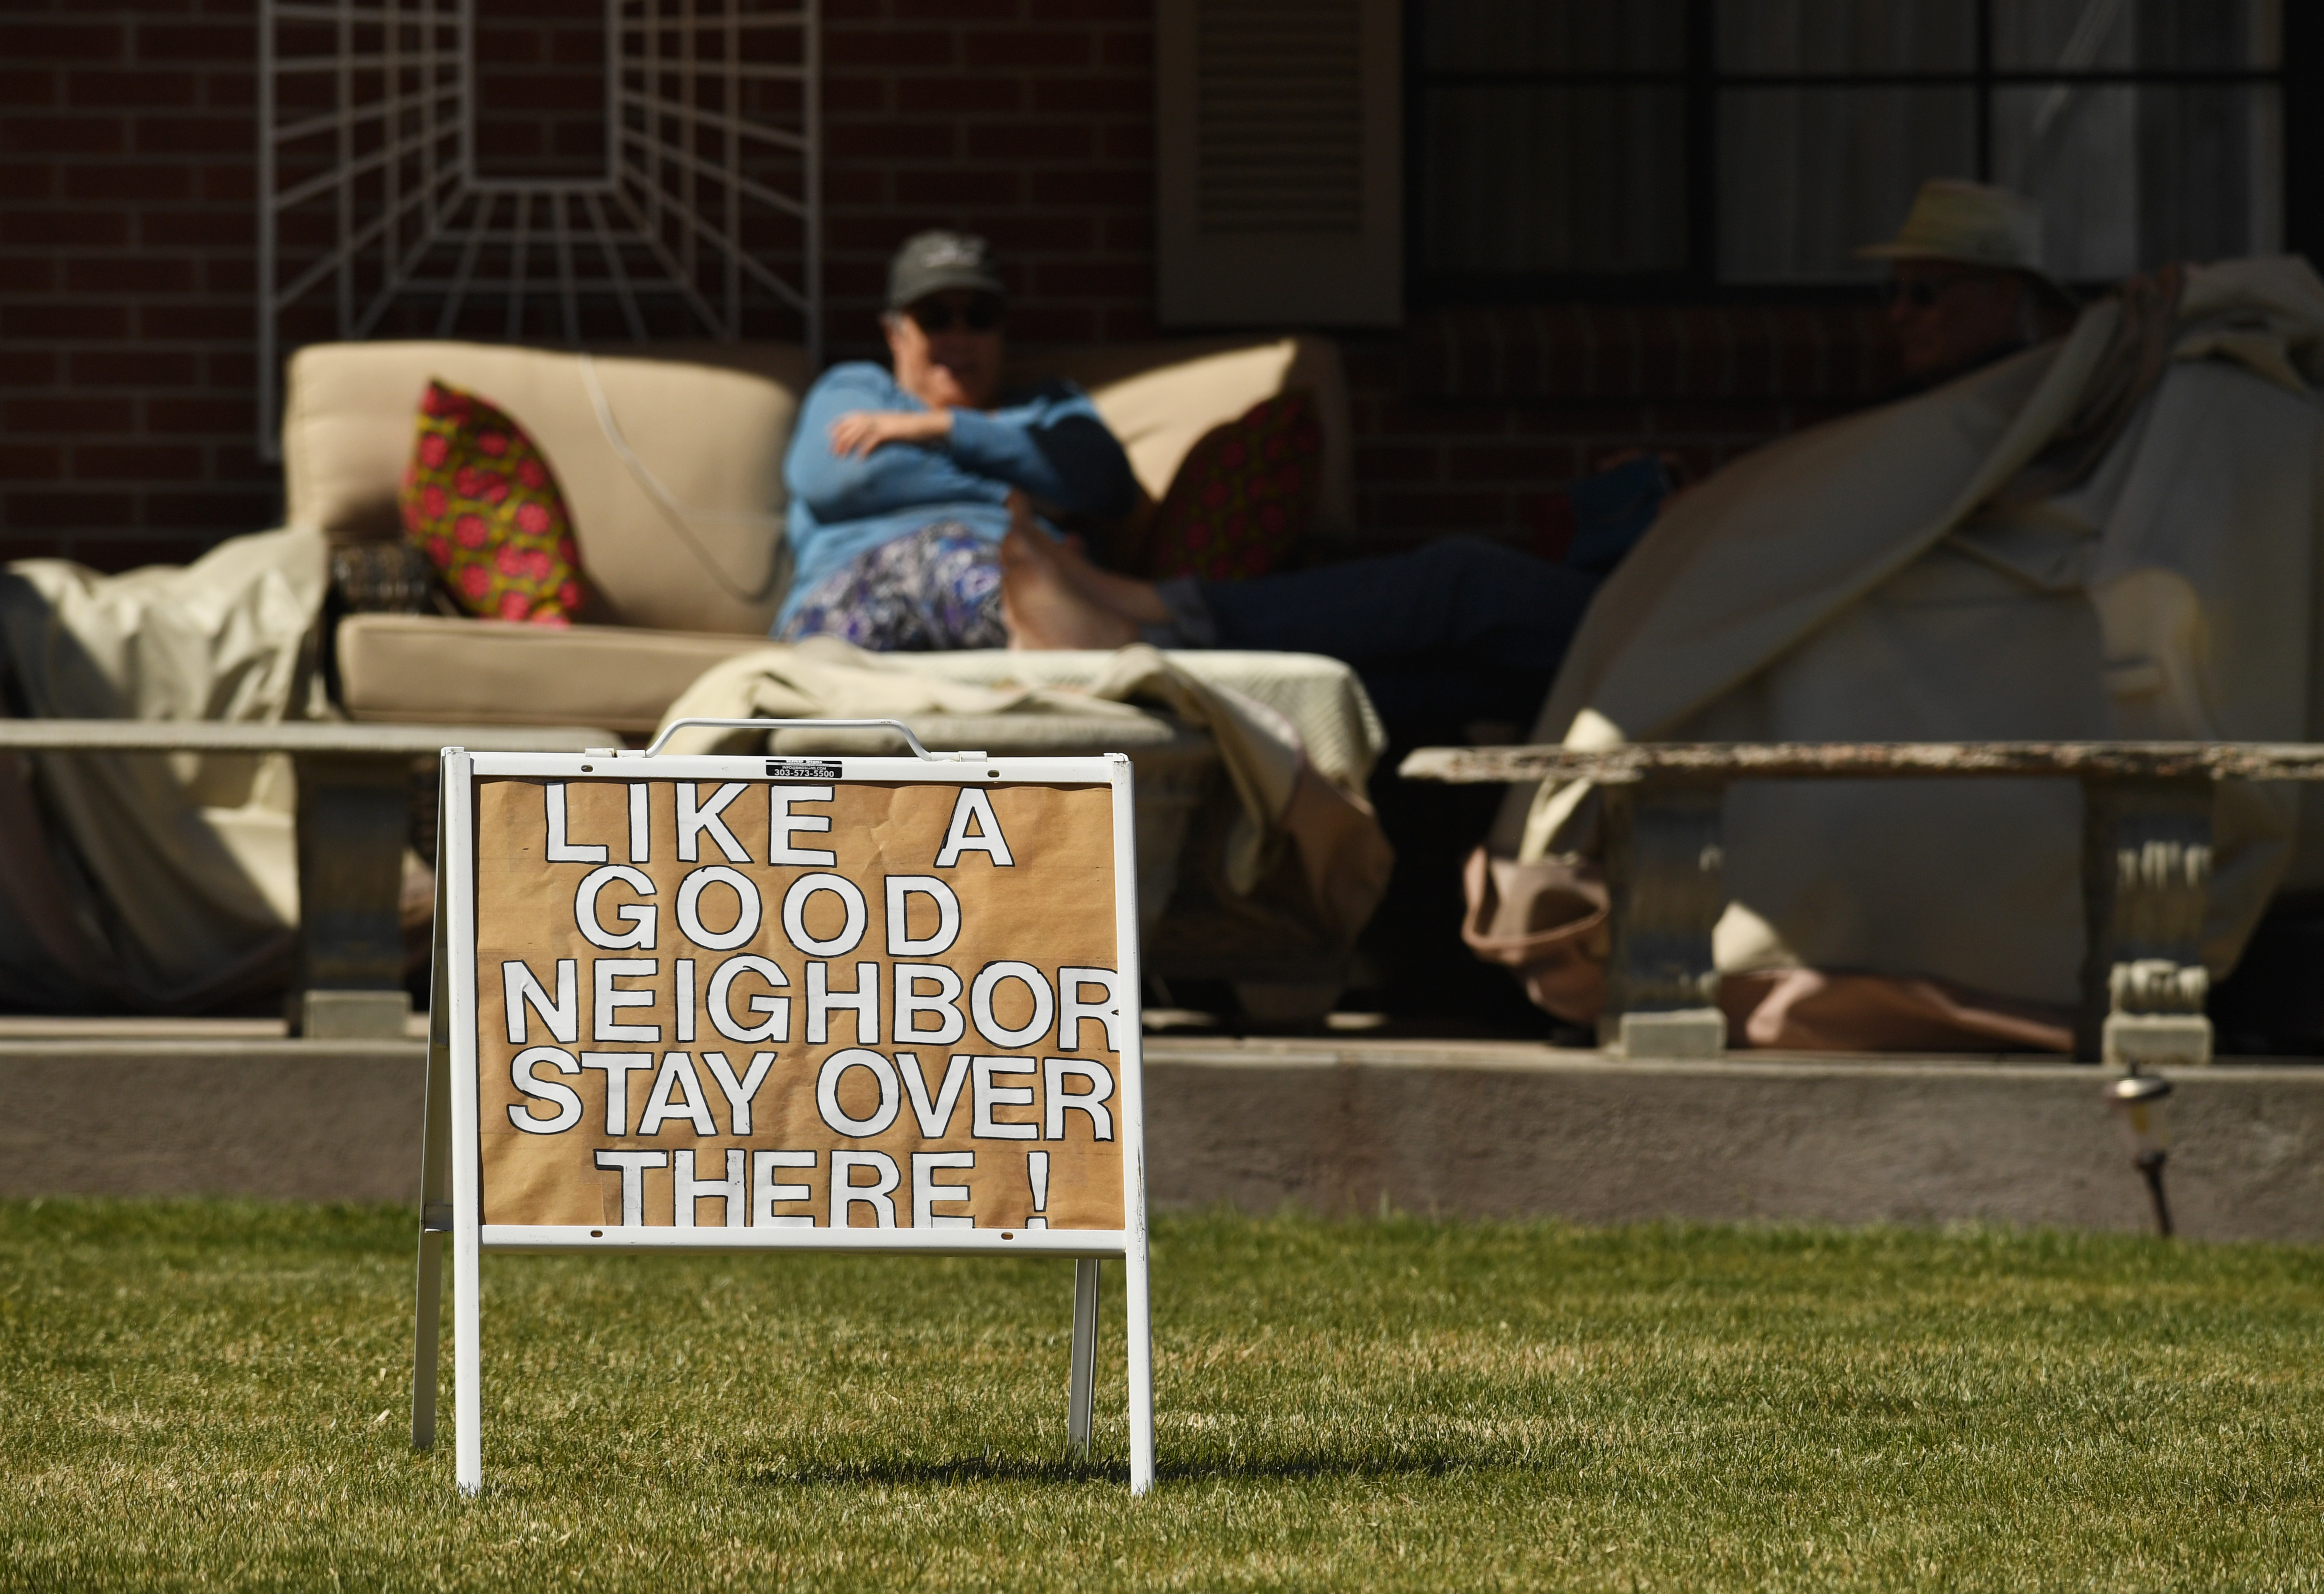 A yard sign reminds neighbors about good social distancing practices during the COVID-19 pandemic on March 31, 2020 in Lakewood, Colorado.